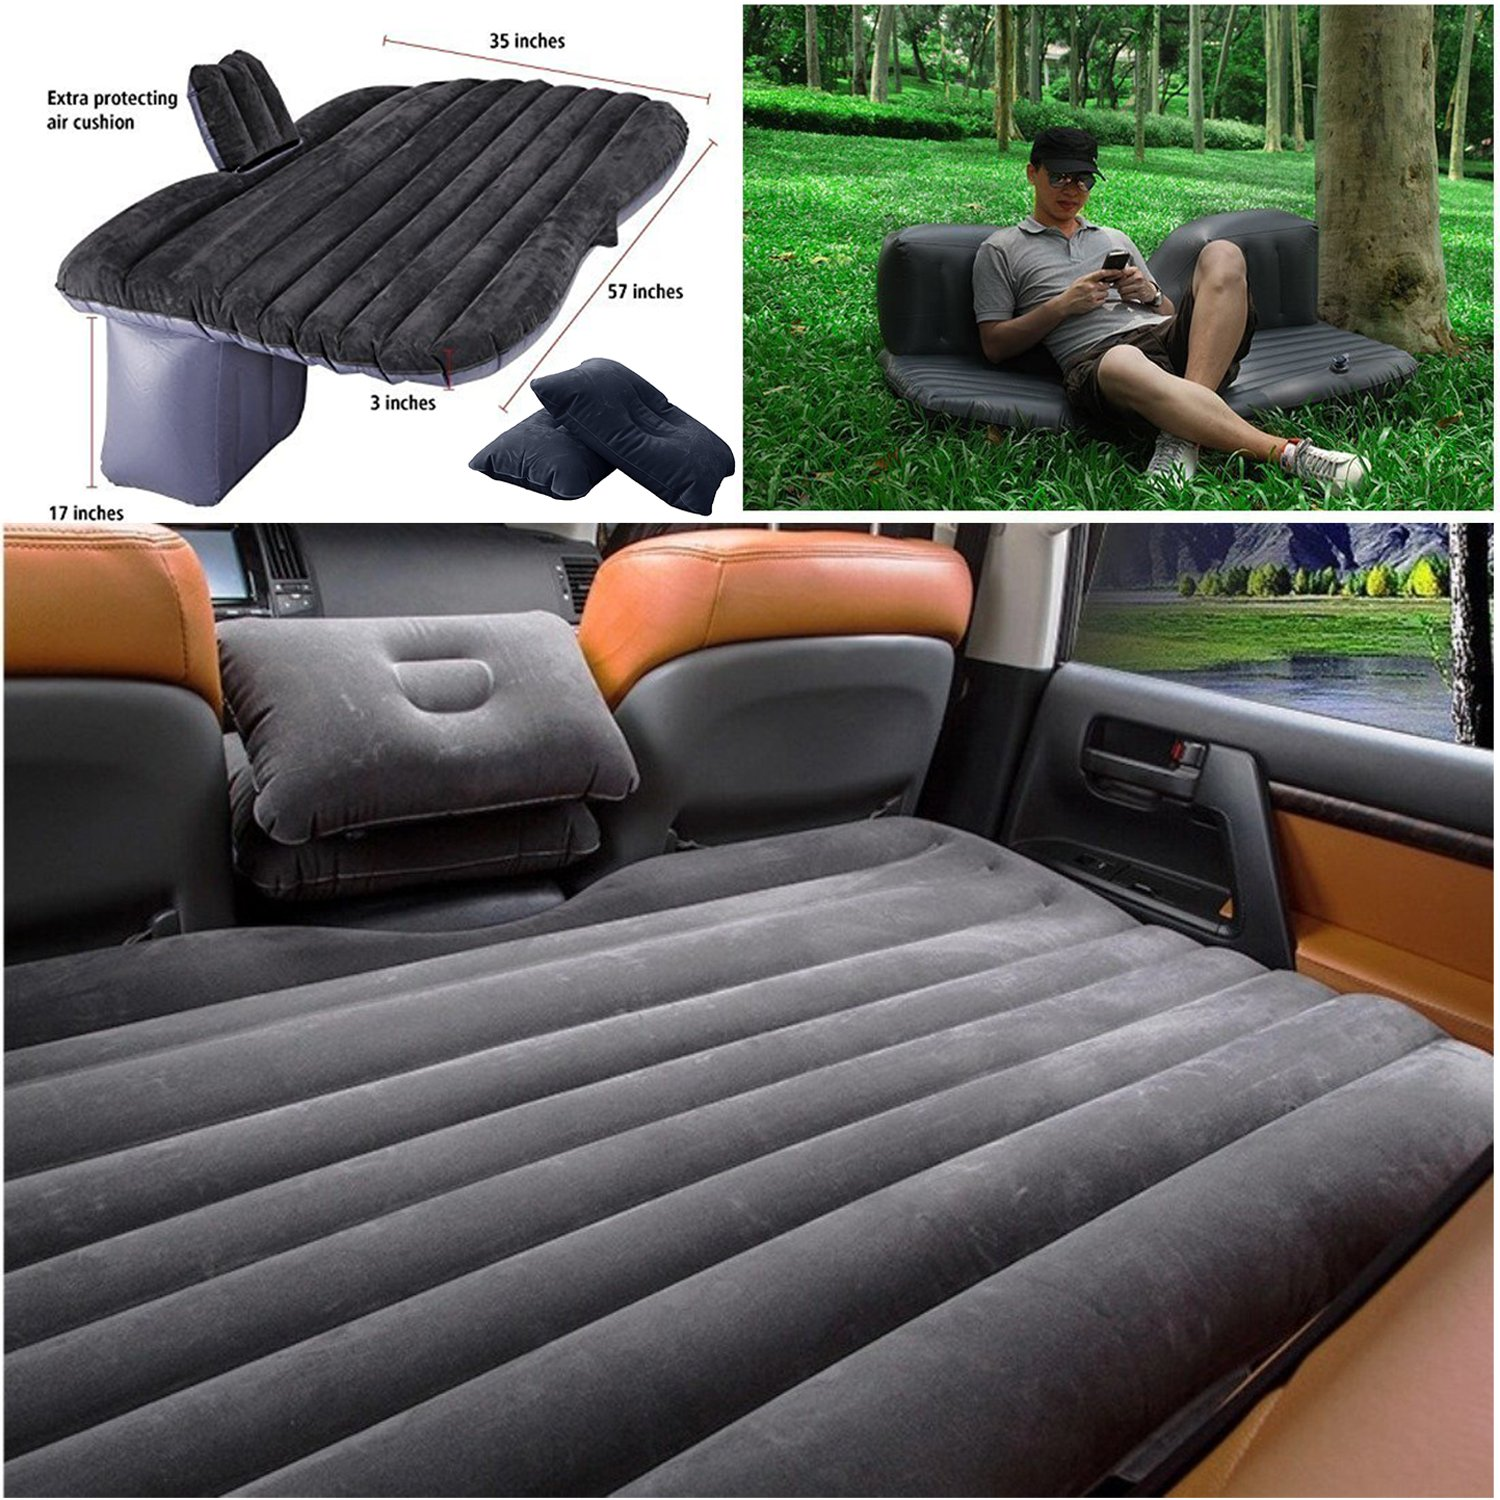 Backseat Inflatable Bed Lababe Car Travel Inflatable Mattress Inflatable Bed Camping Auto